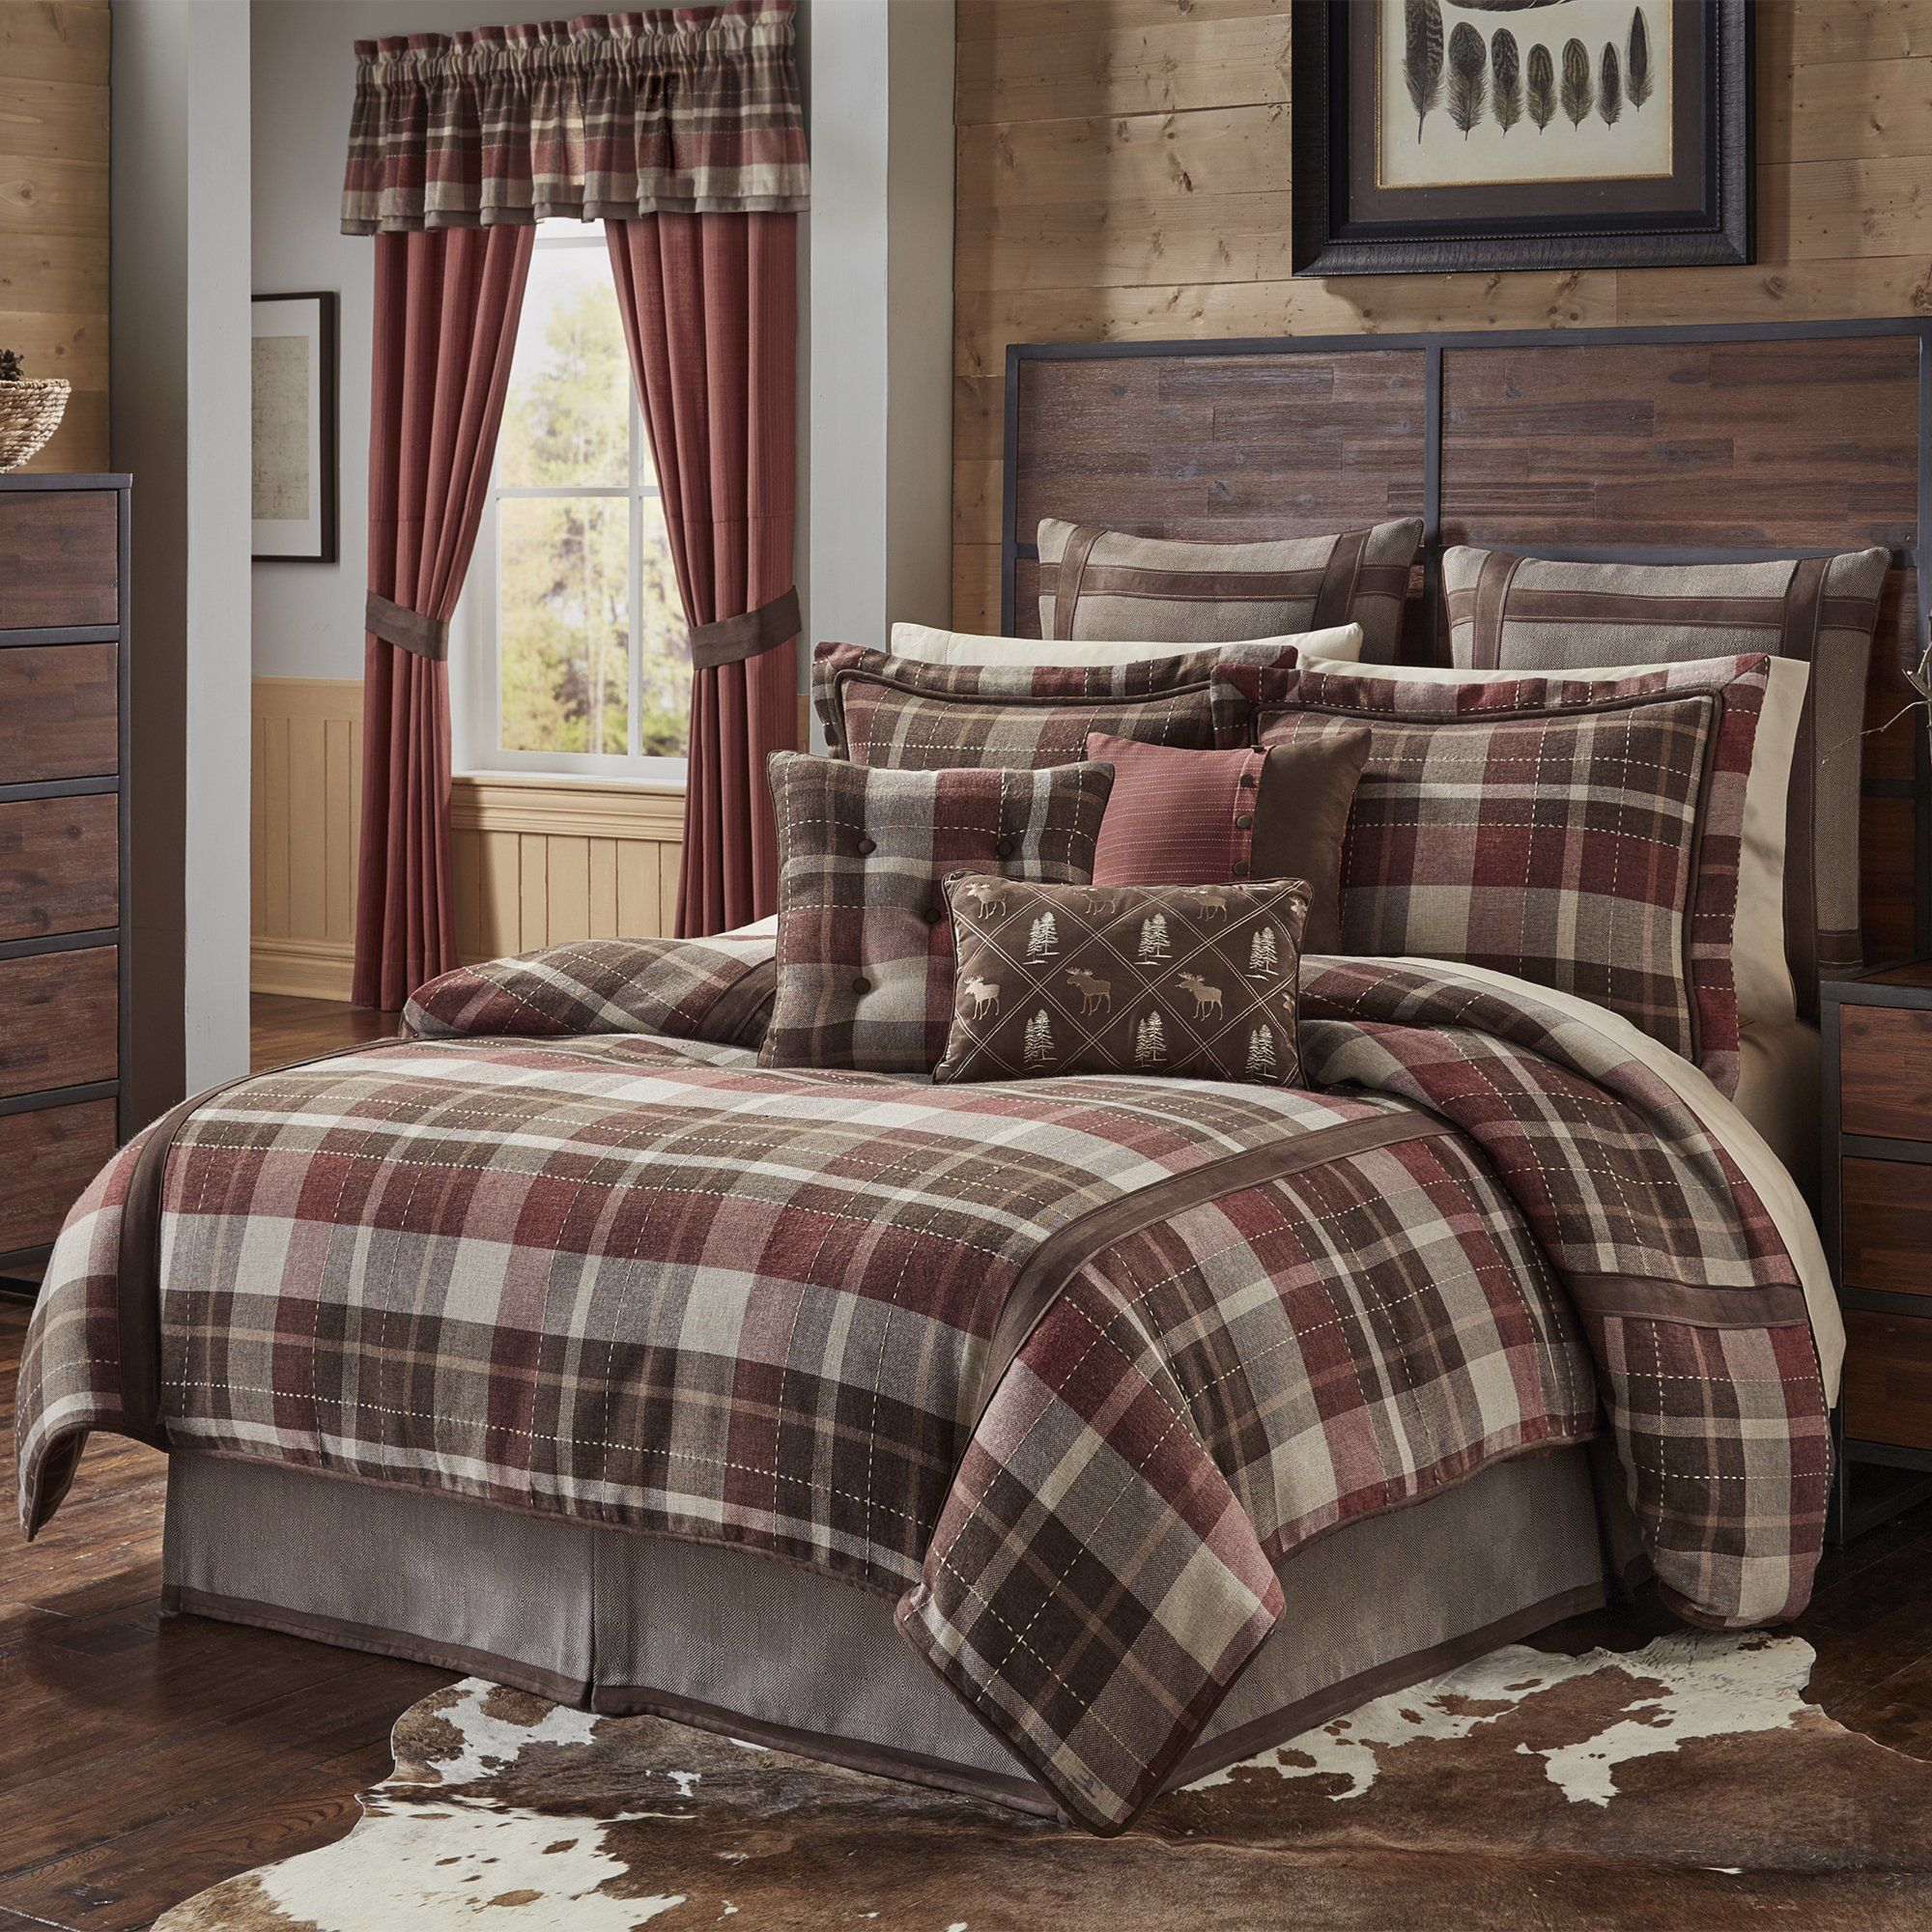 Red and brown plaid bedding - 4 Piece Brown Tan Red Plaid Comforter King Set Cabin Themed Bedding Ivory Tartan Pattern